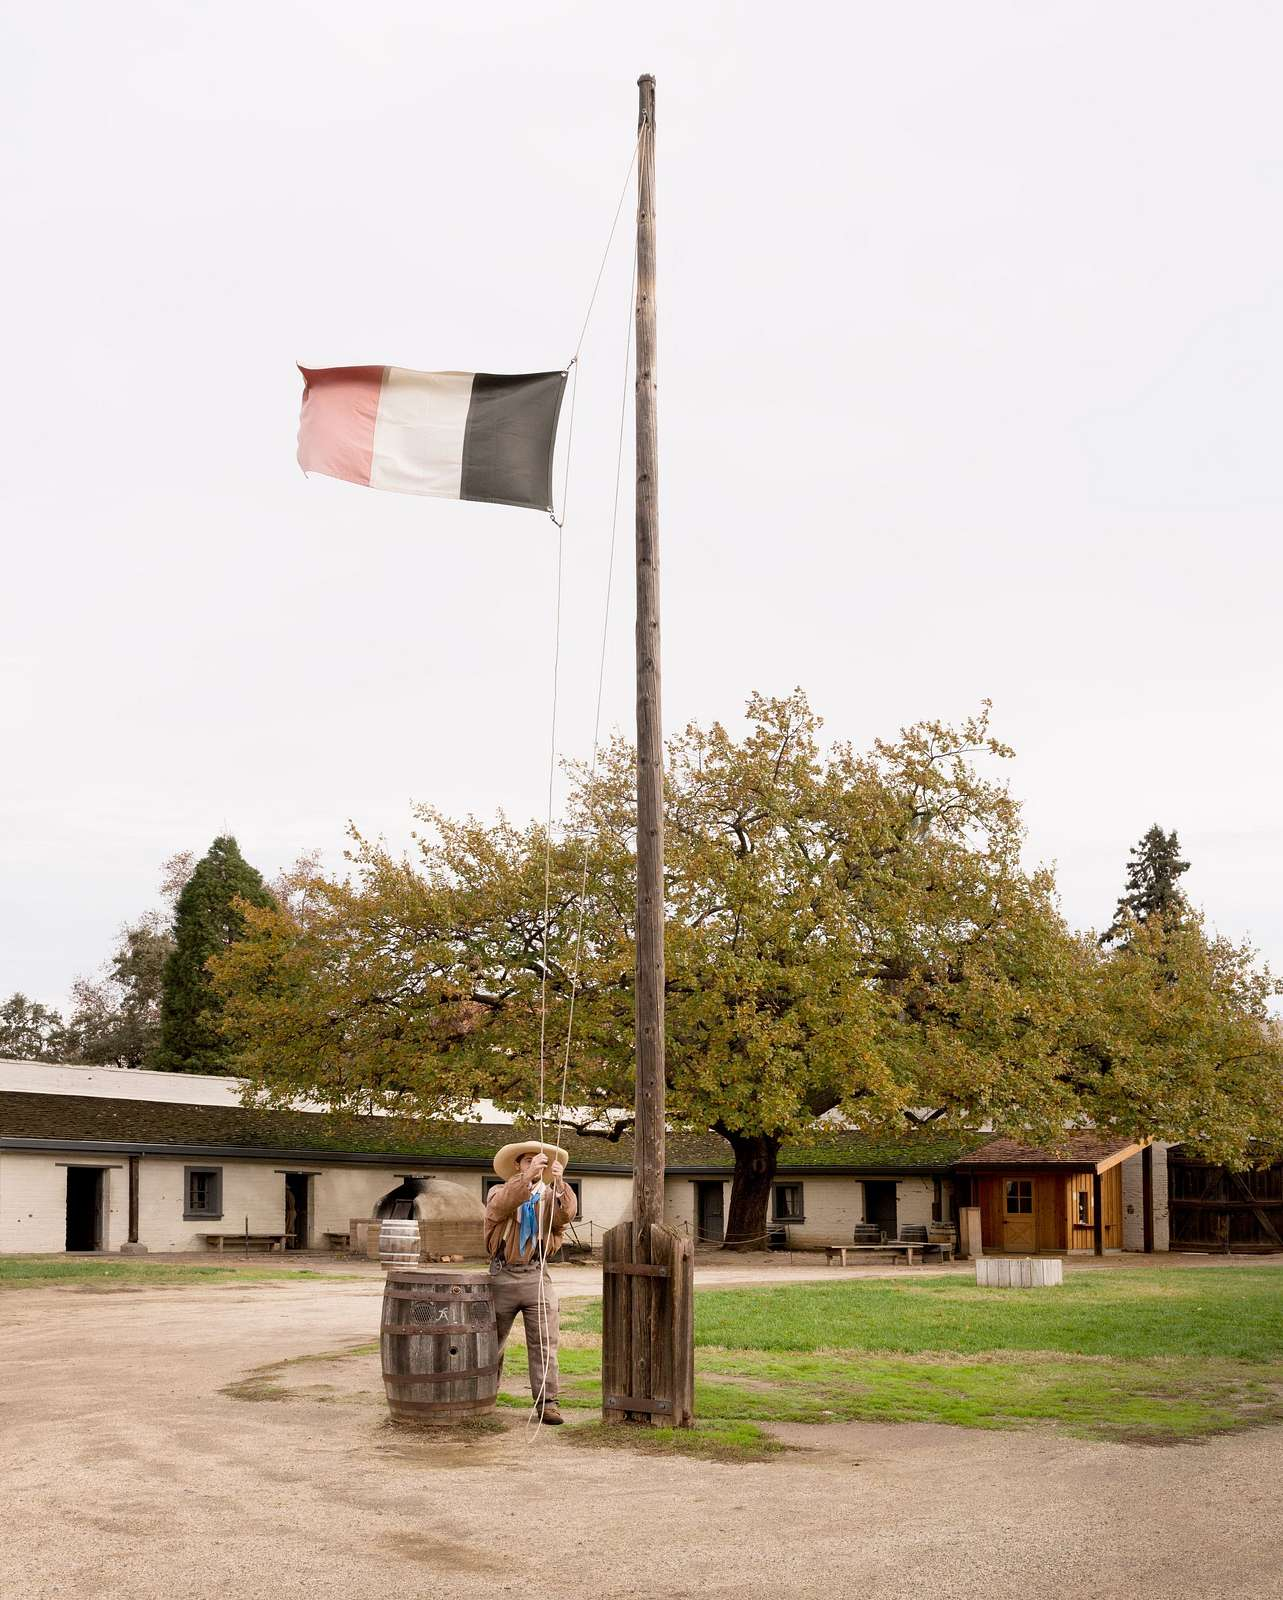 Sutter's Fort is a State Historical Park in California's capital city of Sacramento